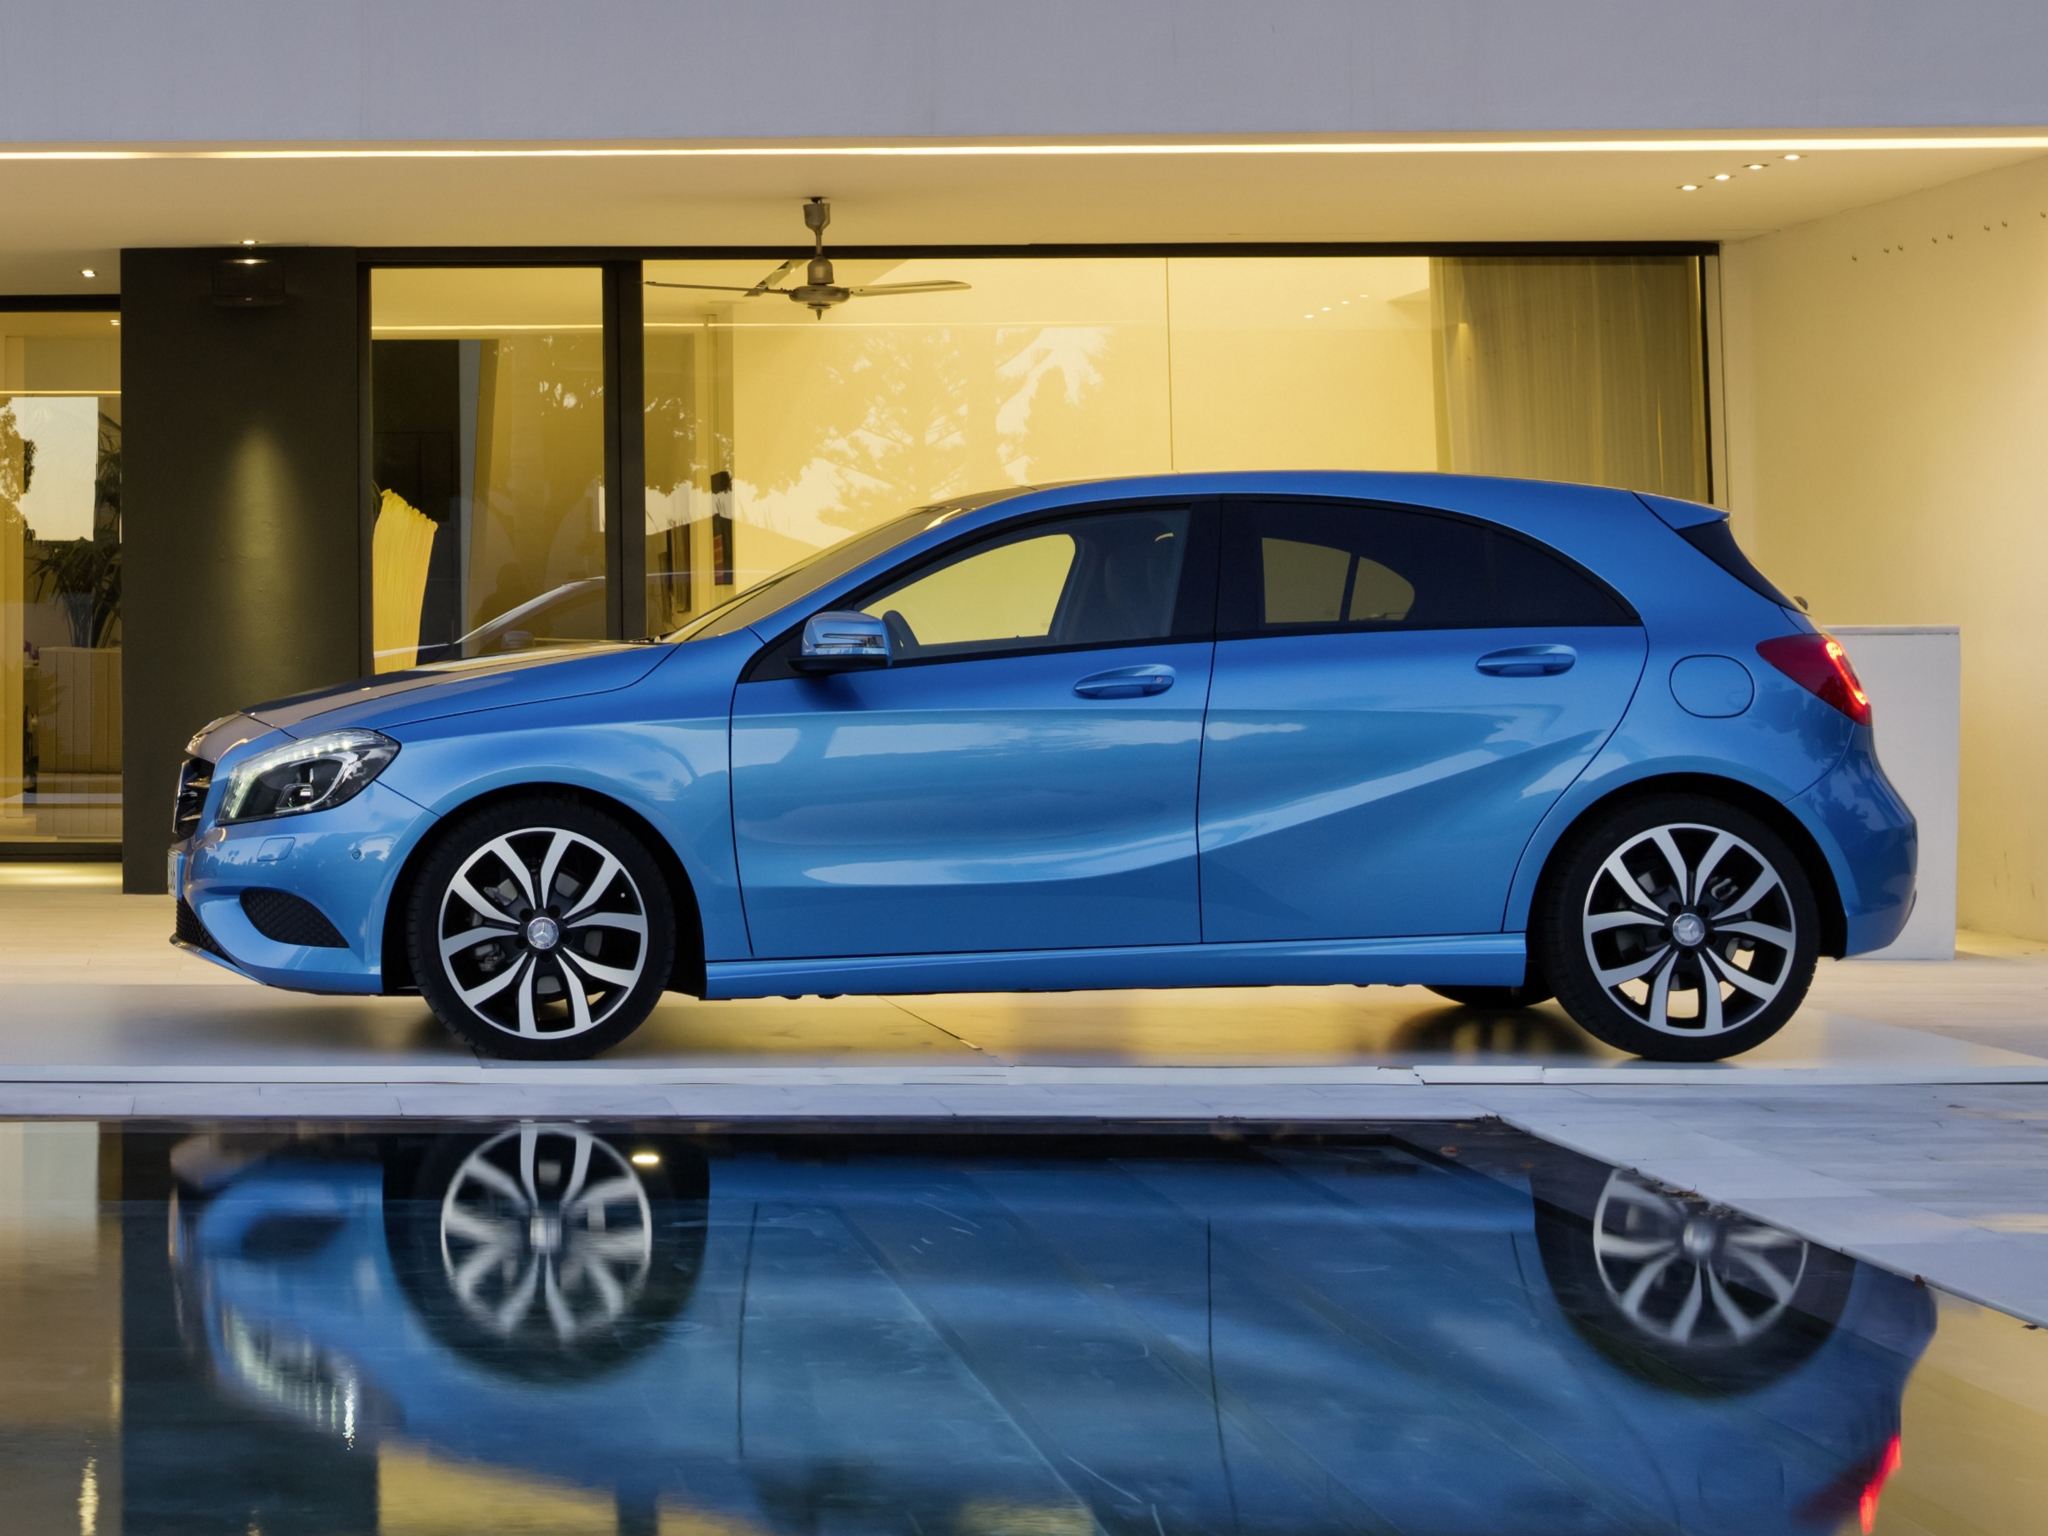 Mercedes Benz A180 Photos Photogallery With 3 Pics